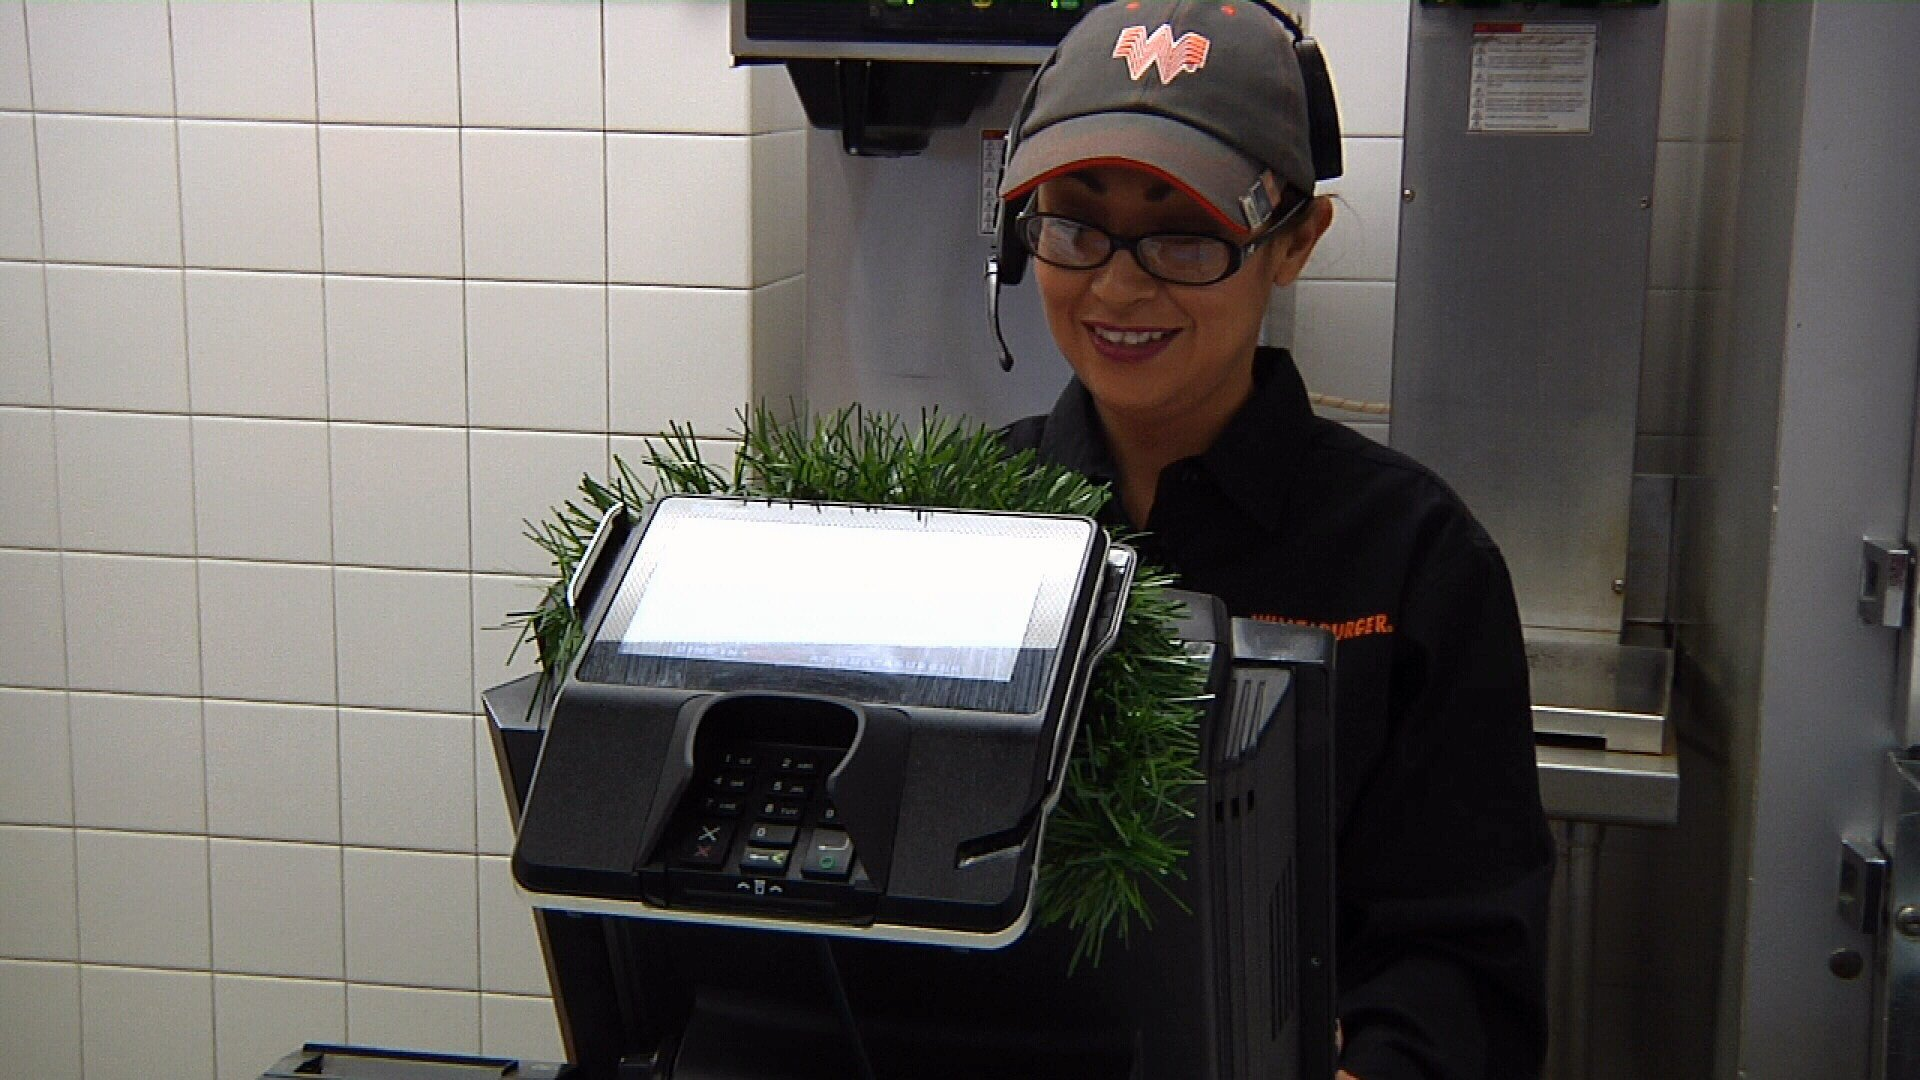 Manager Melissa Montoya served the First Lady her first meal from Whataburger ever.